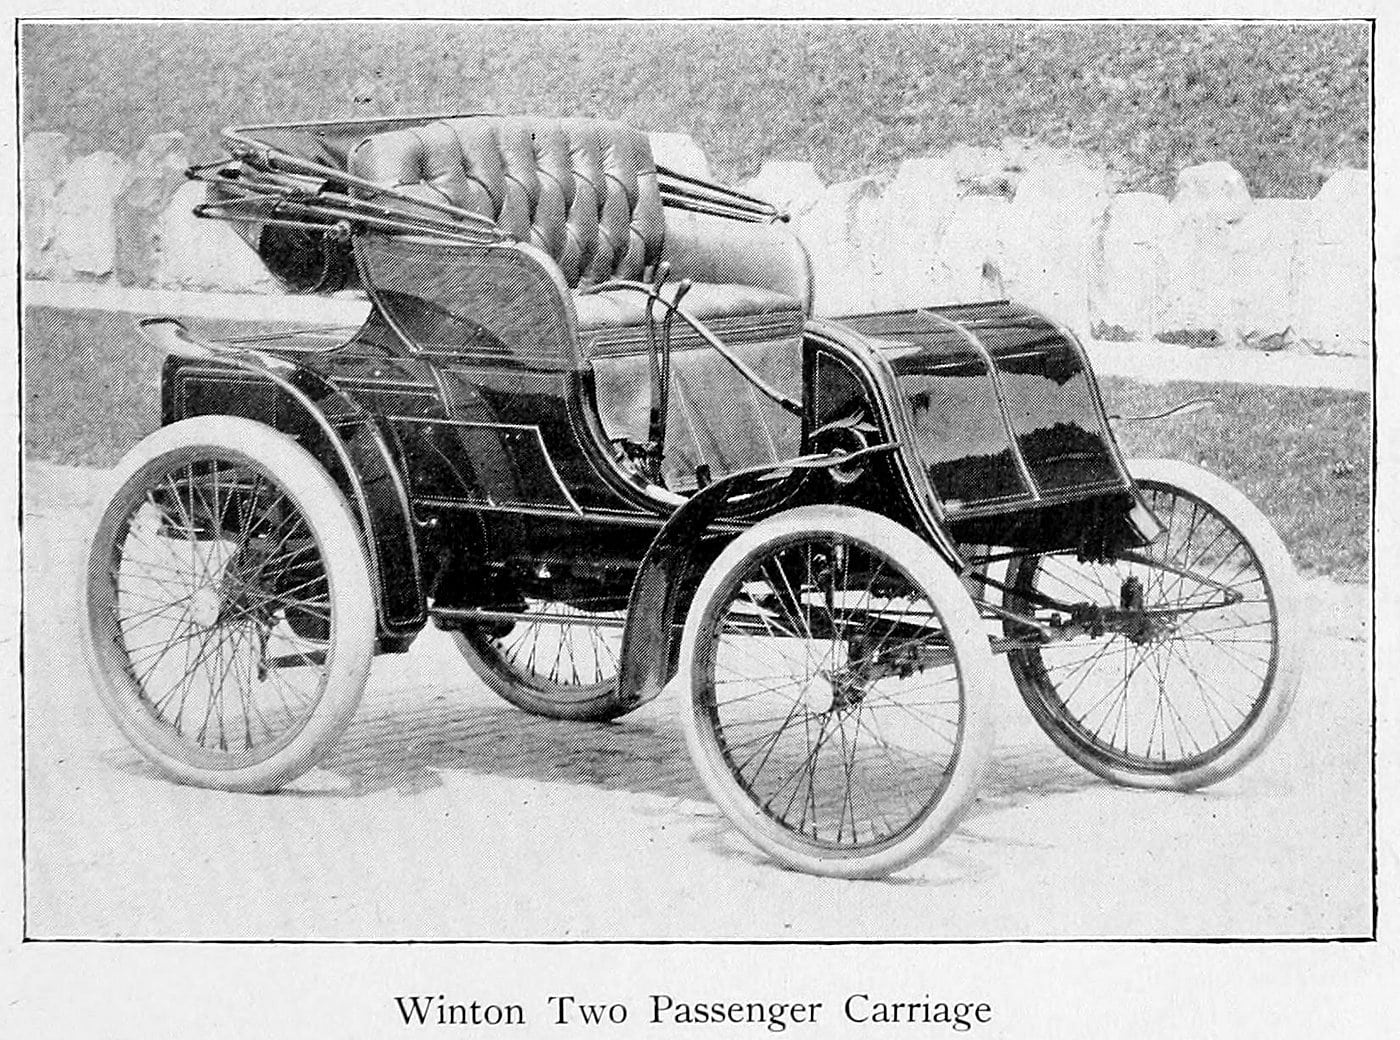 Winton two passenger carriage (1900)